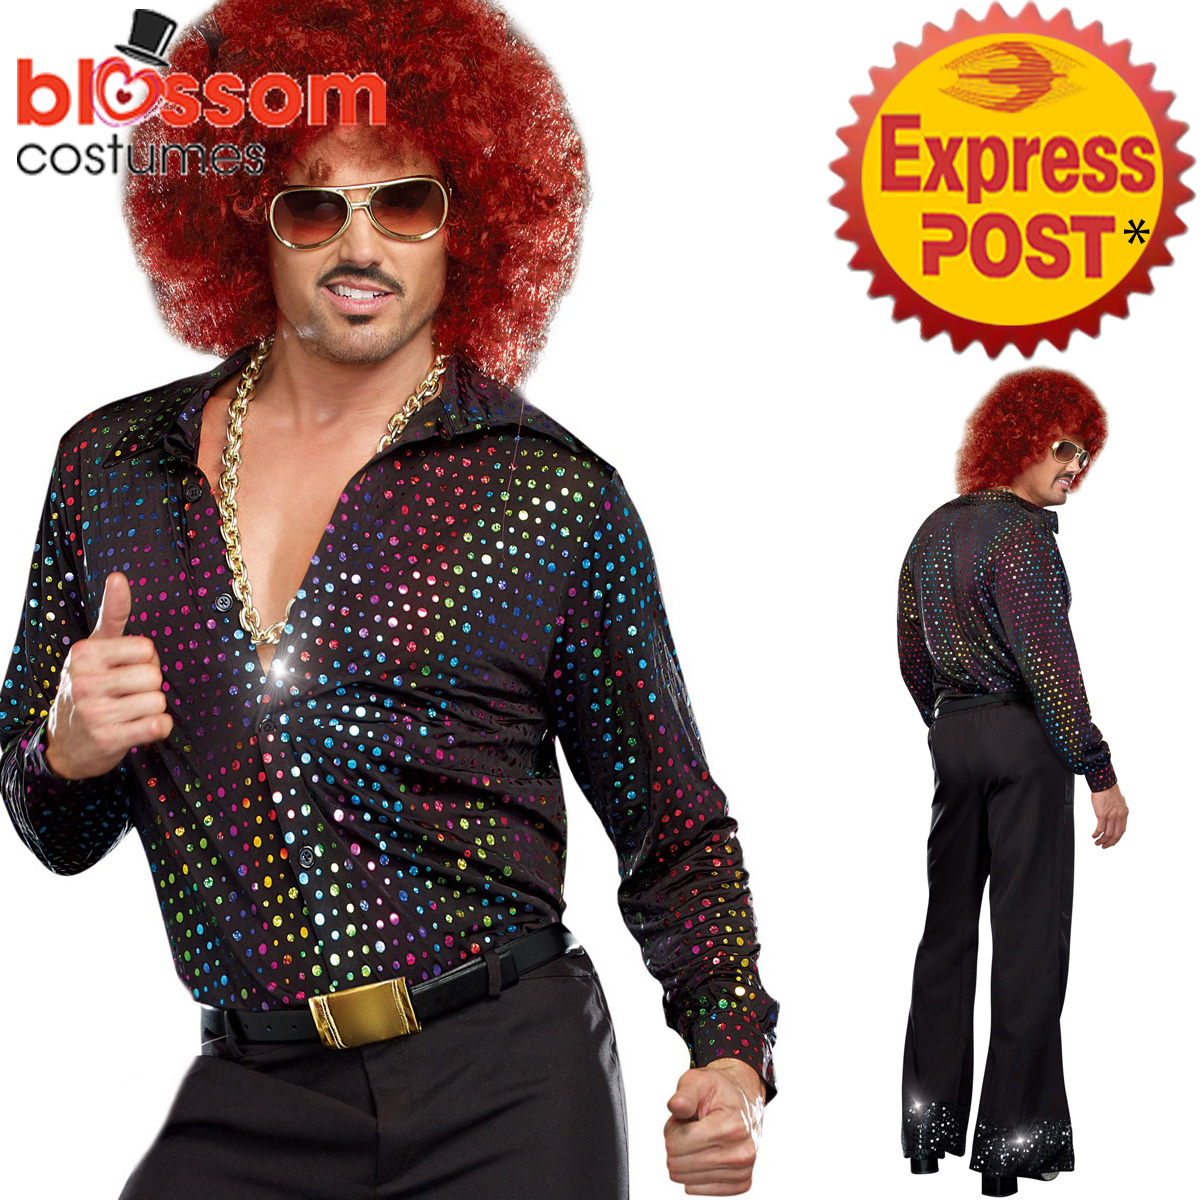 K385-Mens-Disco-Costume-Wig-1960s-Fancy-Dress-Up-Retro-1970s-Hippie-Outfit